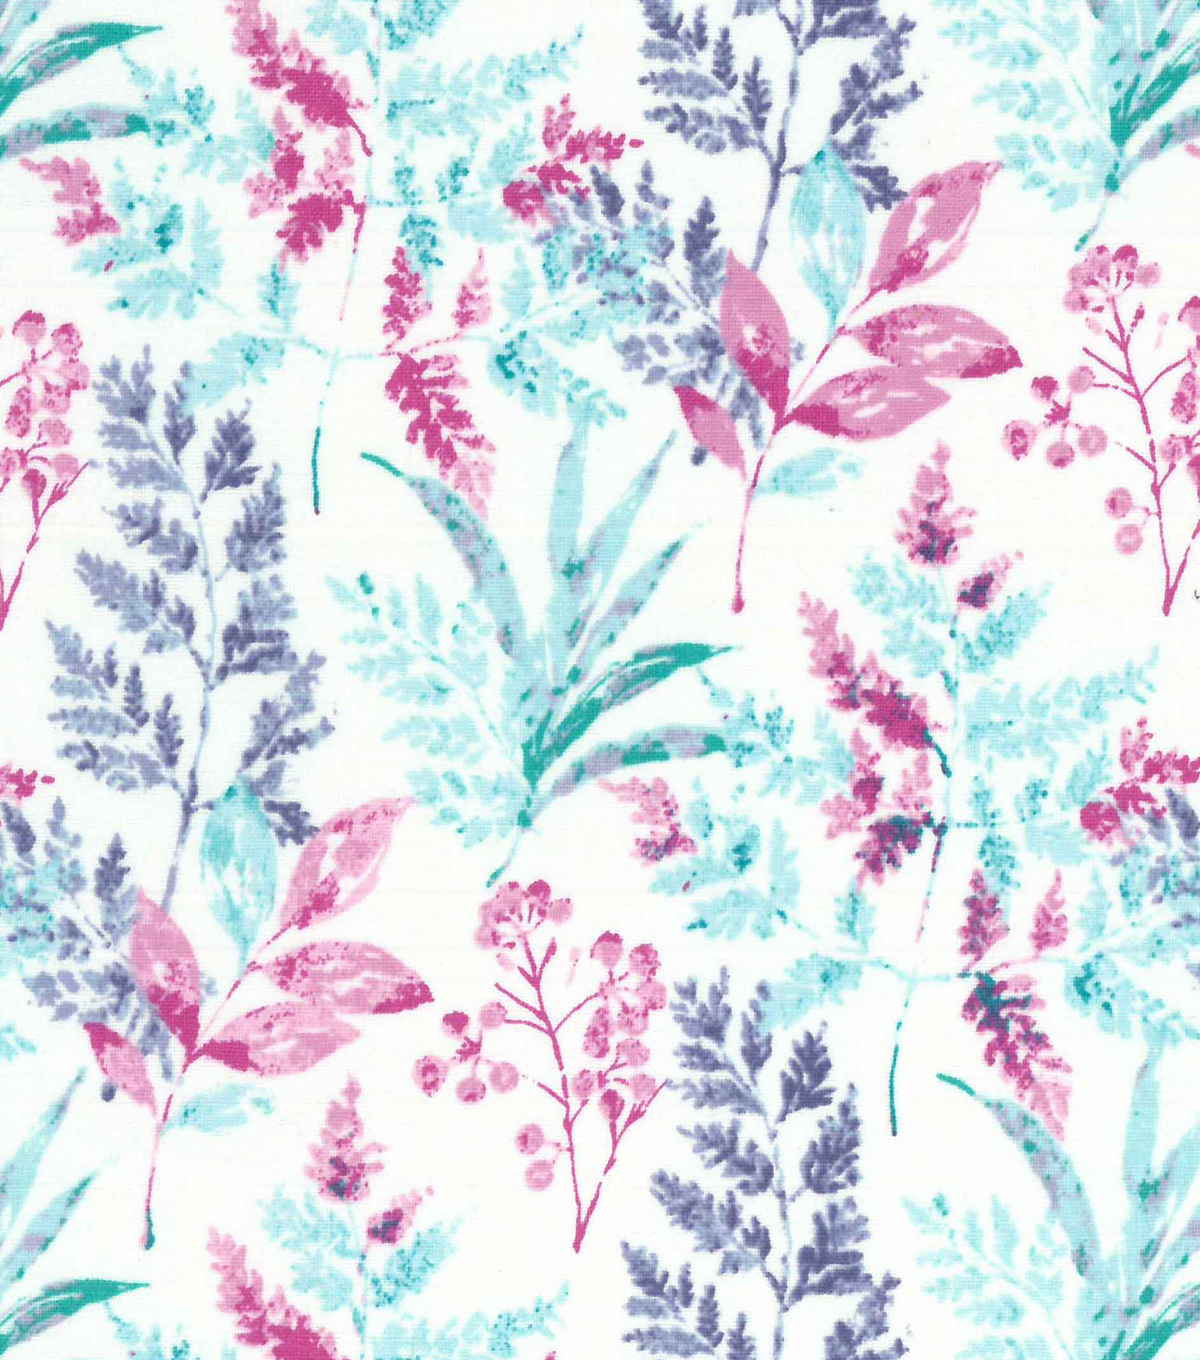 Premium Quilt Cotton Fabric -Floral Light Stems